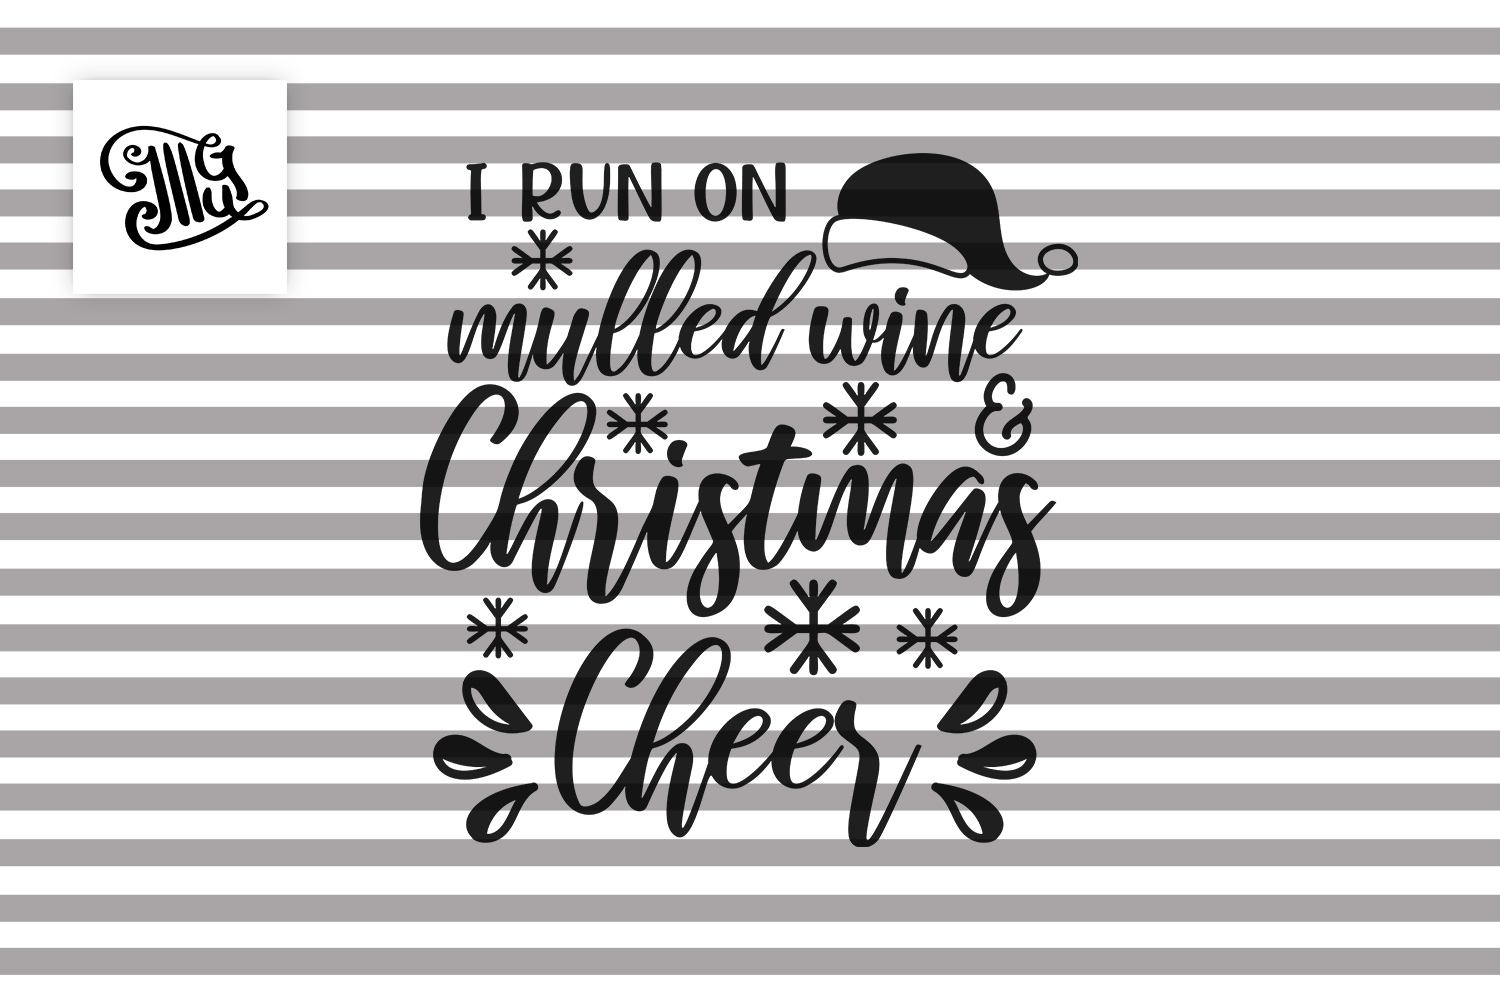 I run on mulled wine and Christmas cheer - Christmas wine example image 2